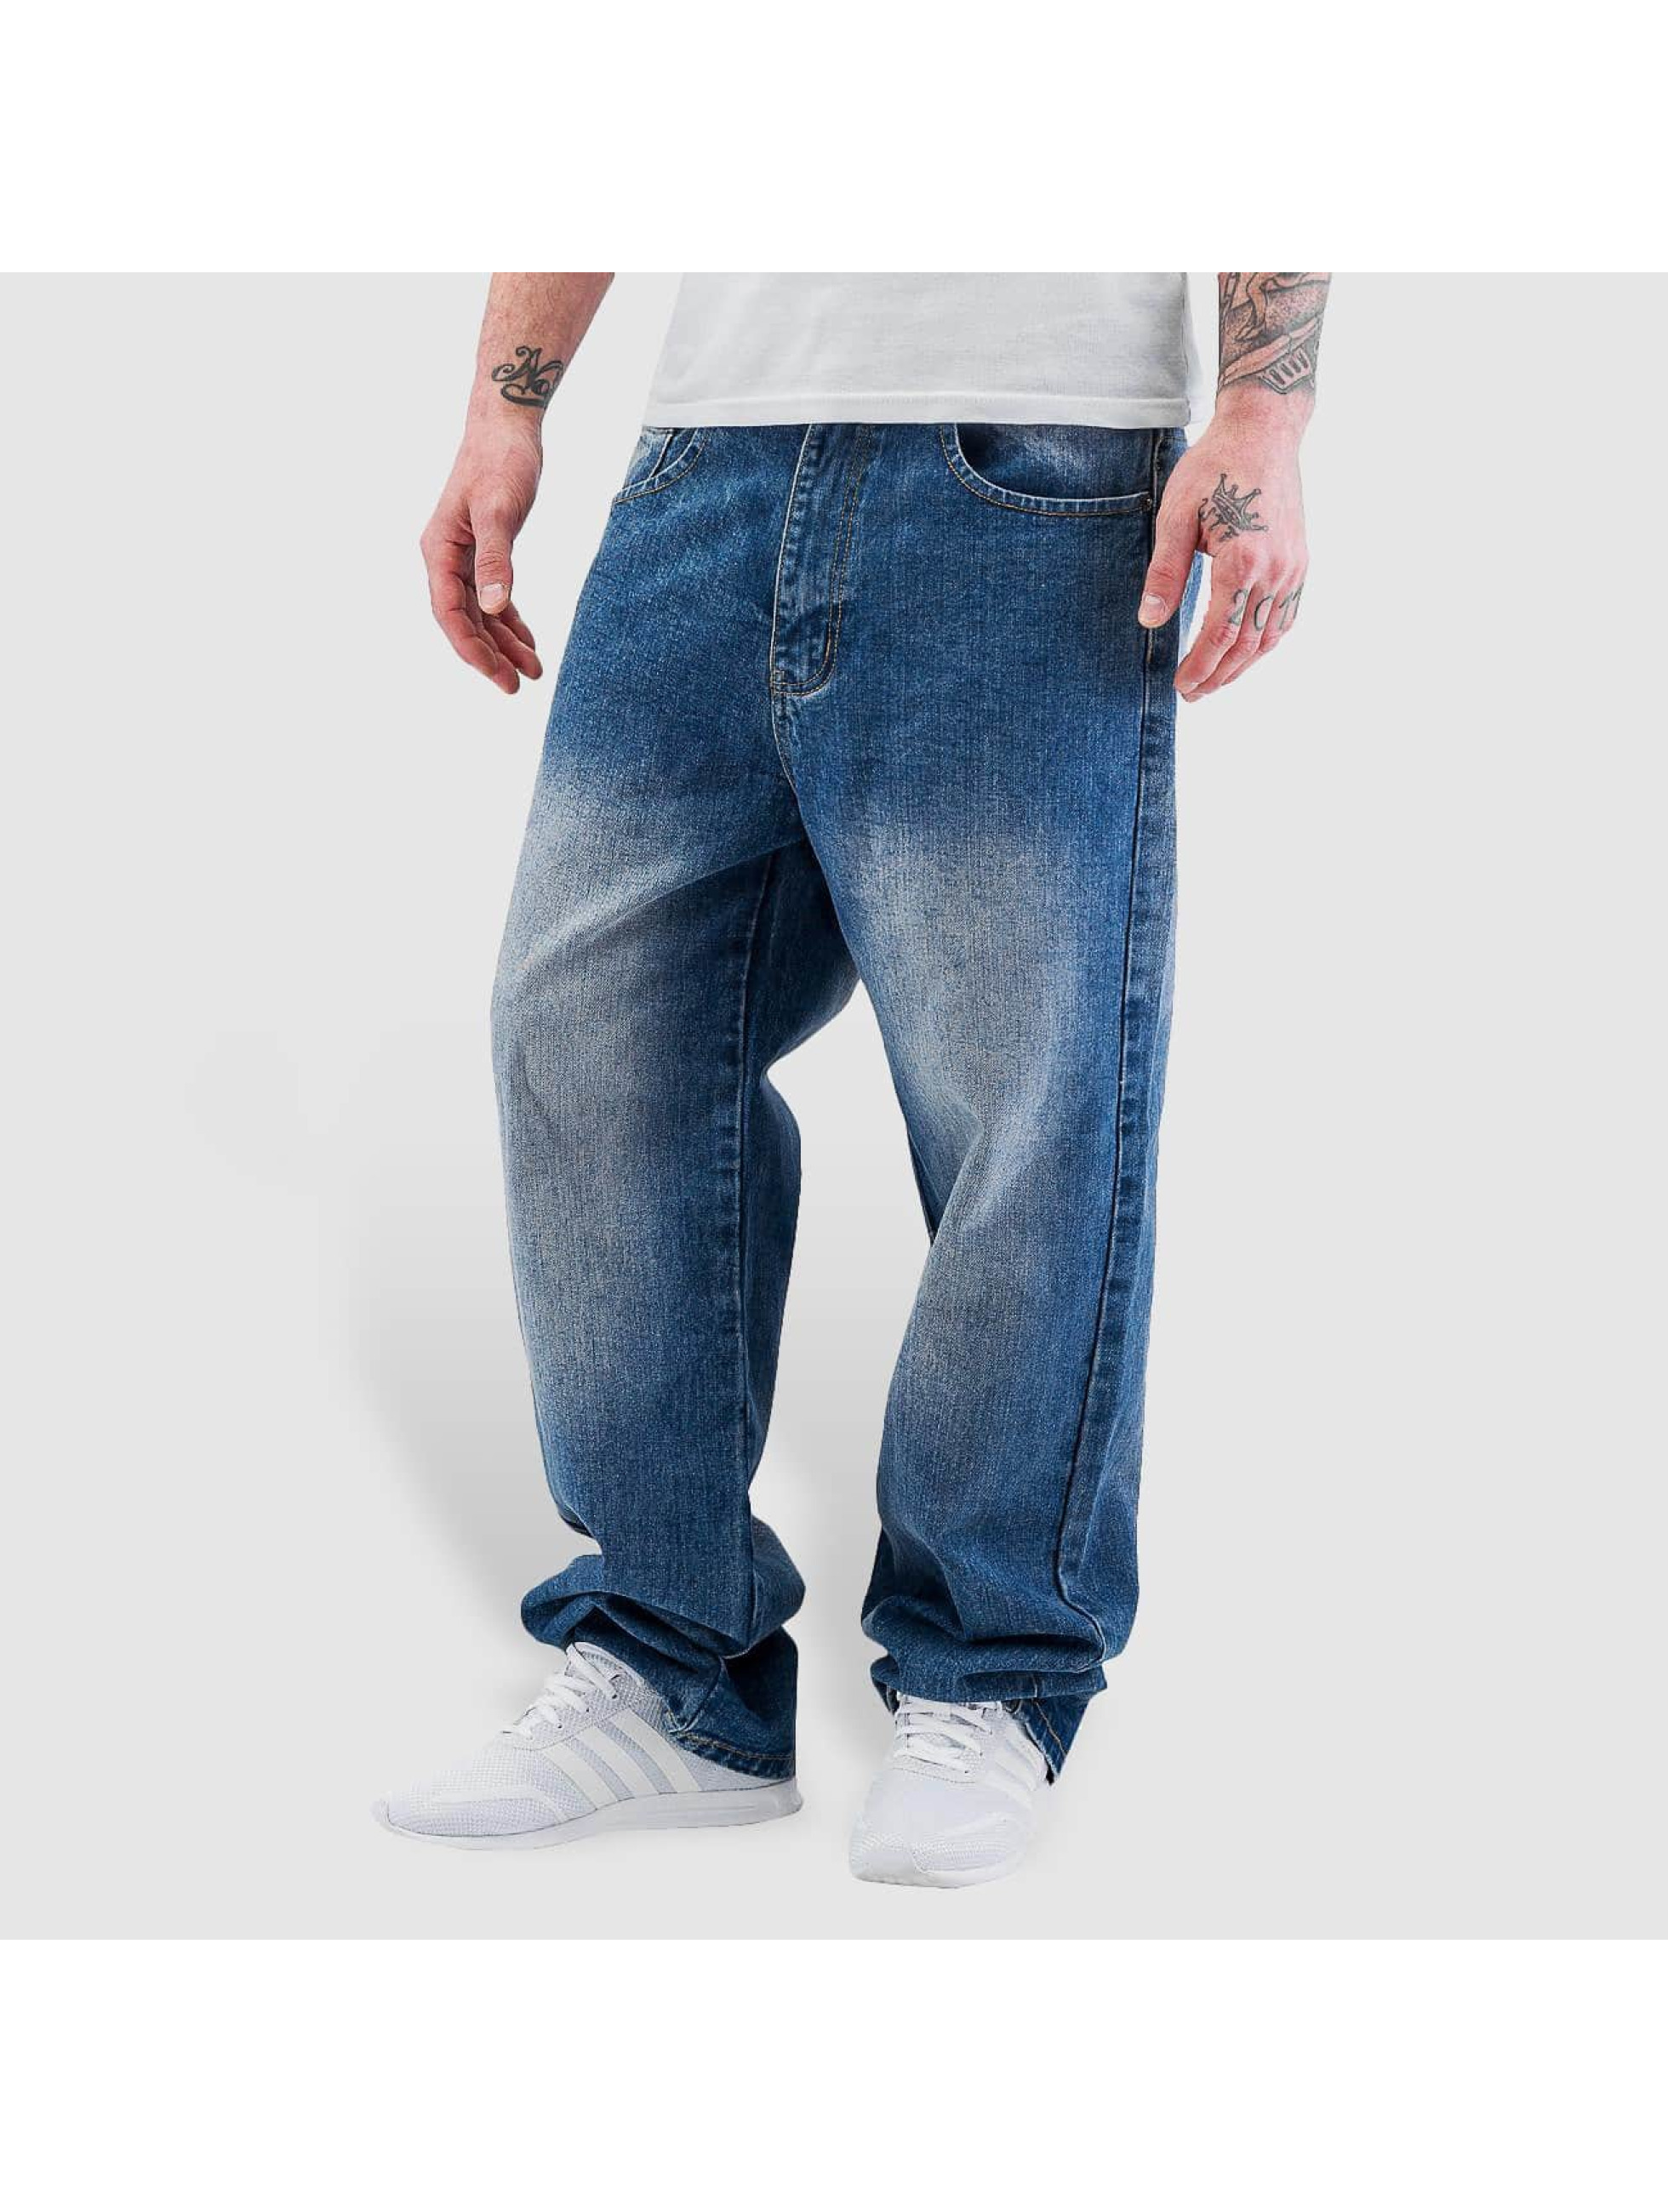 Baggy Jeans. Stay relaxed when you kick back for your days off with baggy jeans. Whether you like the comfortable fit or the relaxed look, you can find the pants that fit your mood.. Choose the right wash jeans for your style when you are dressing to relax.